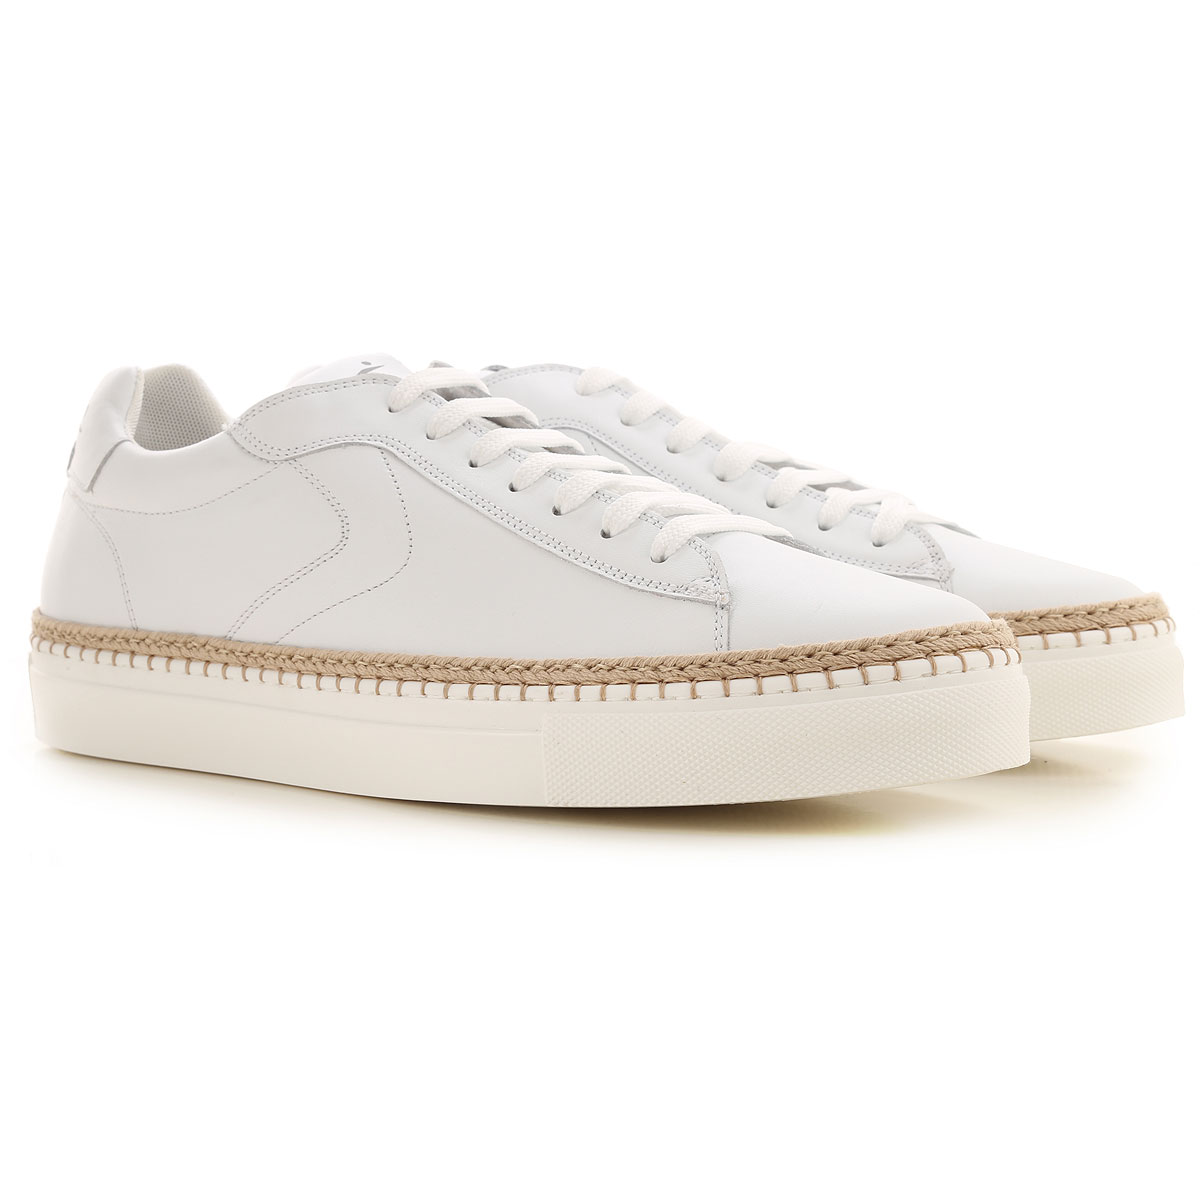 Voile Blanche Sneakers for Men On Sale in Outlet, White, Leather, 2019, 10.5 8